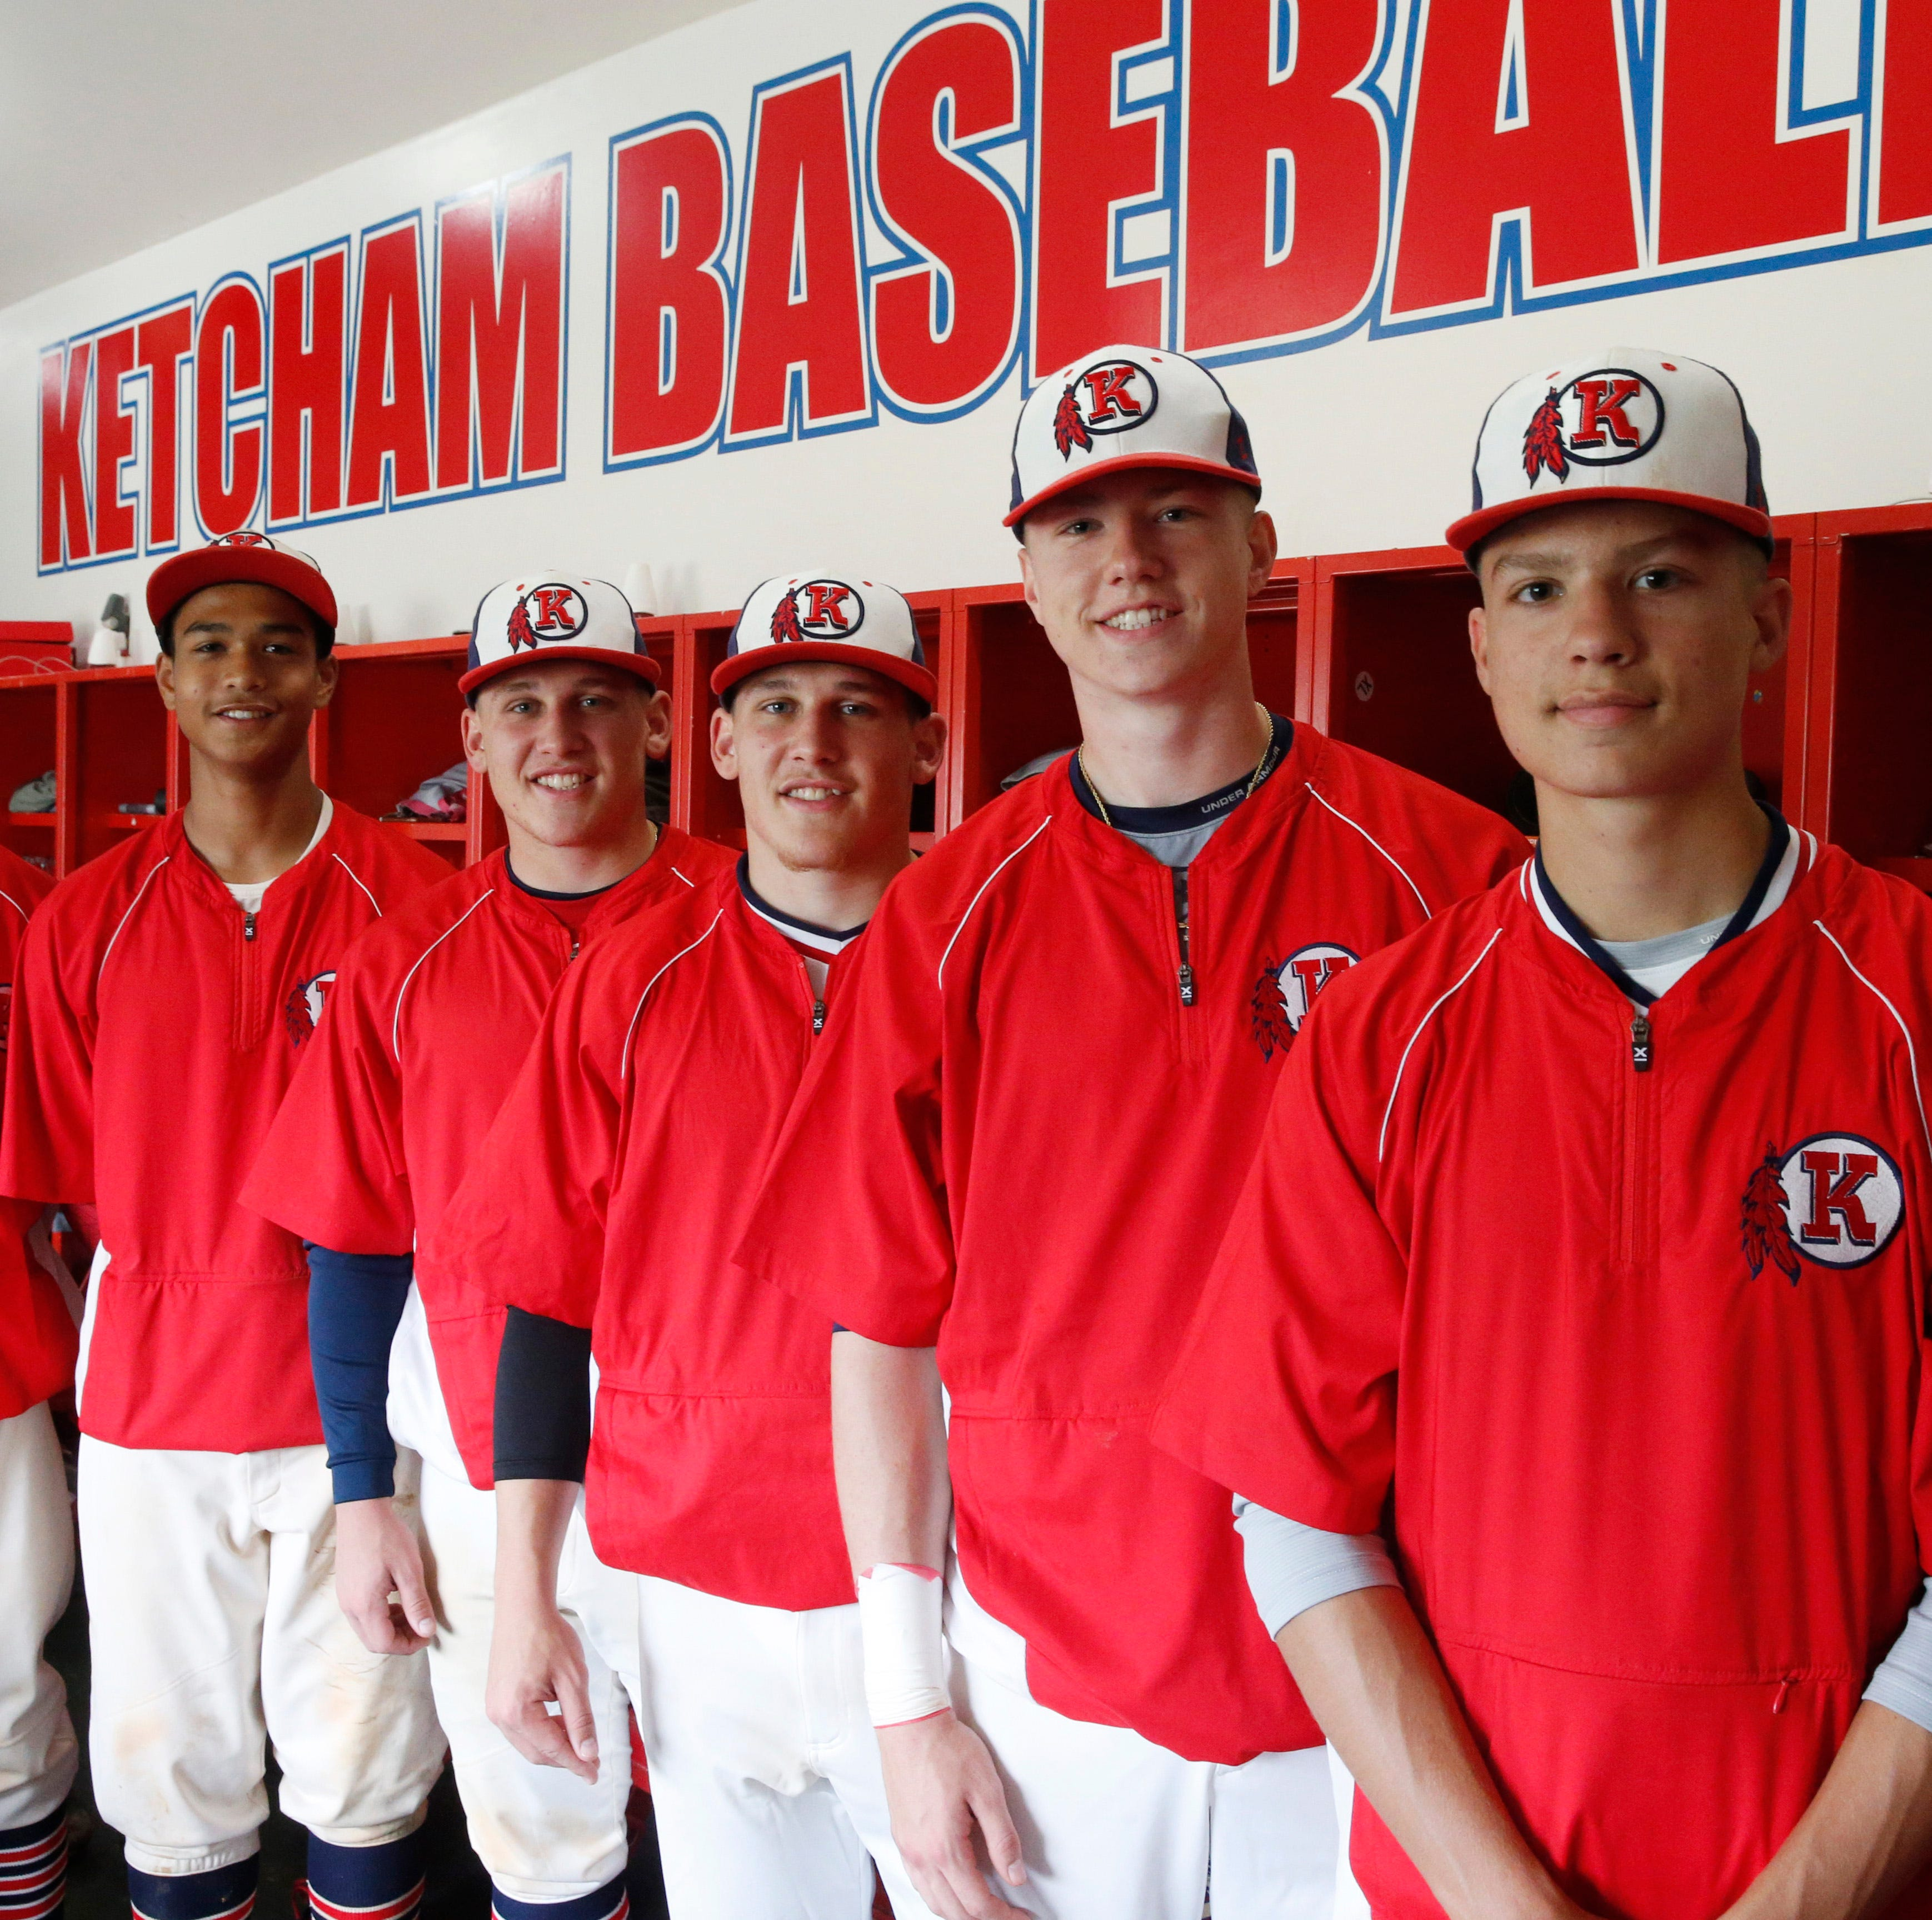 Brothers in arms: Ketcham baseball's siblings pushing each other through success